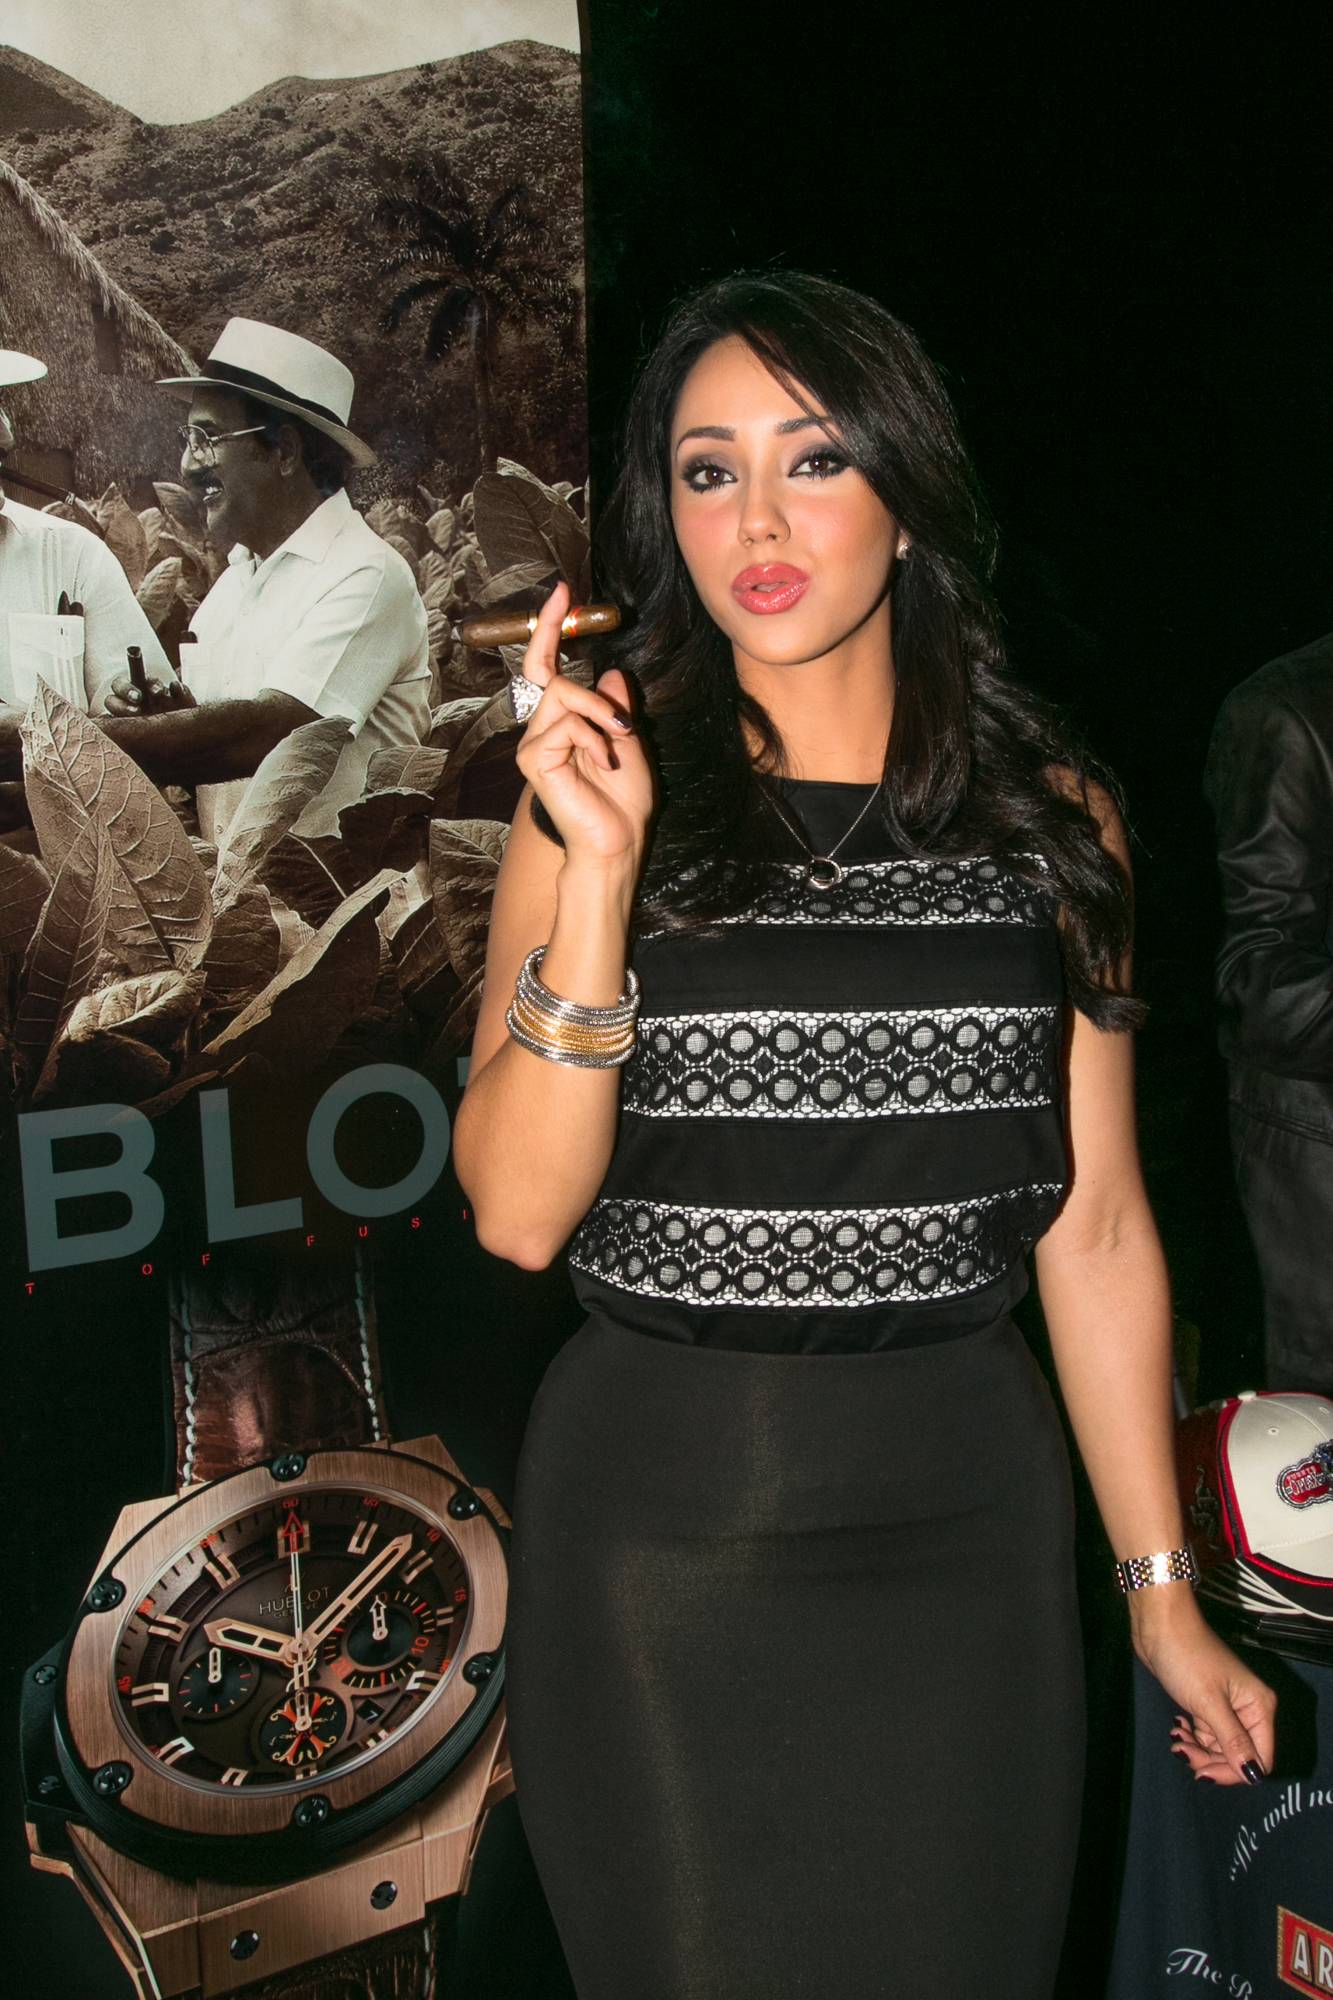 The Betsy Hotel Rooftop- Hublot, Arturo Fuente Cigars and Fraser Yachts event (14)